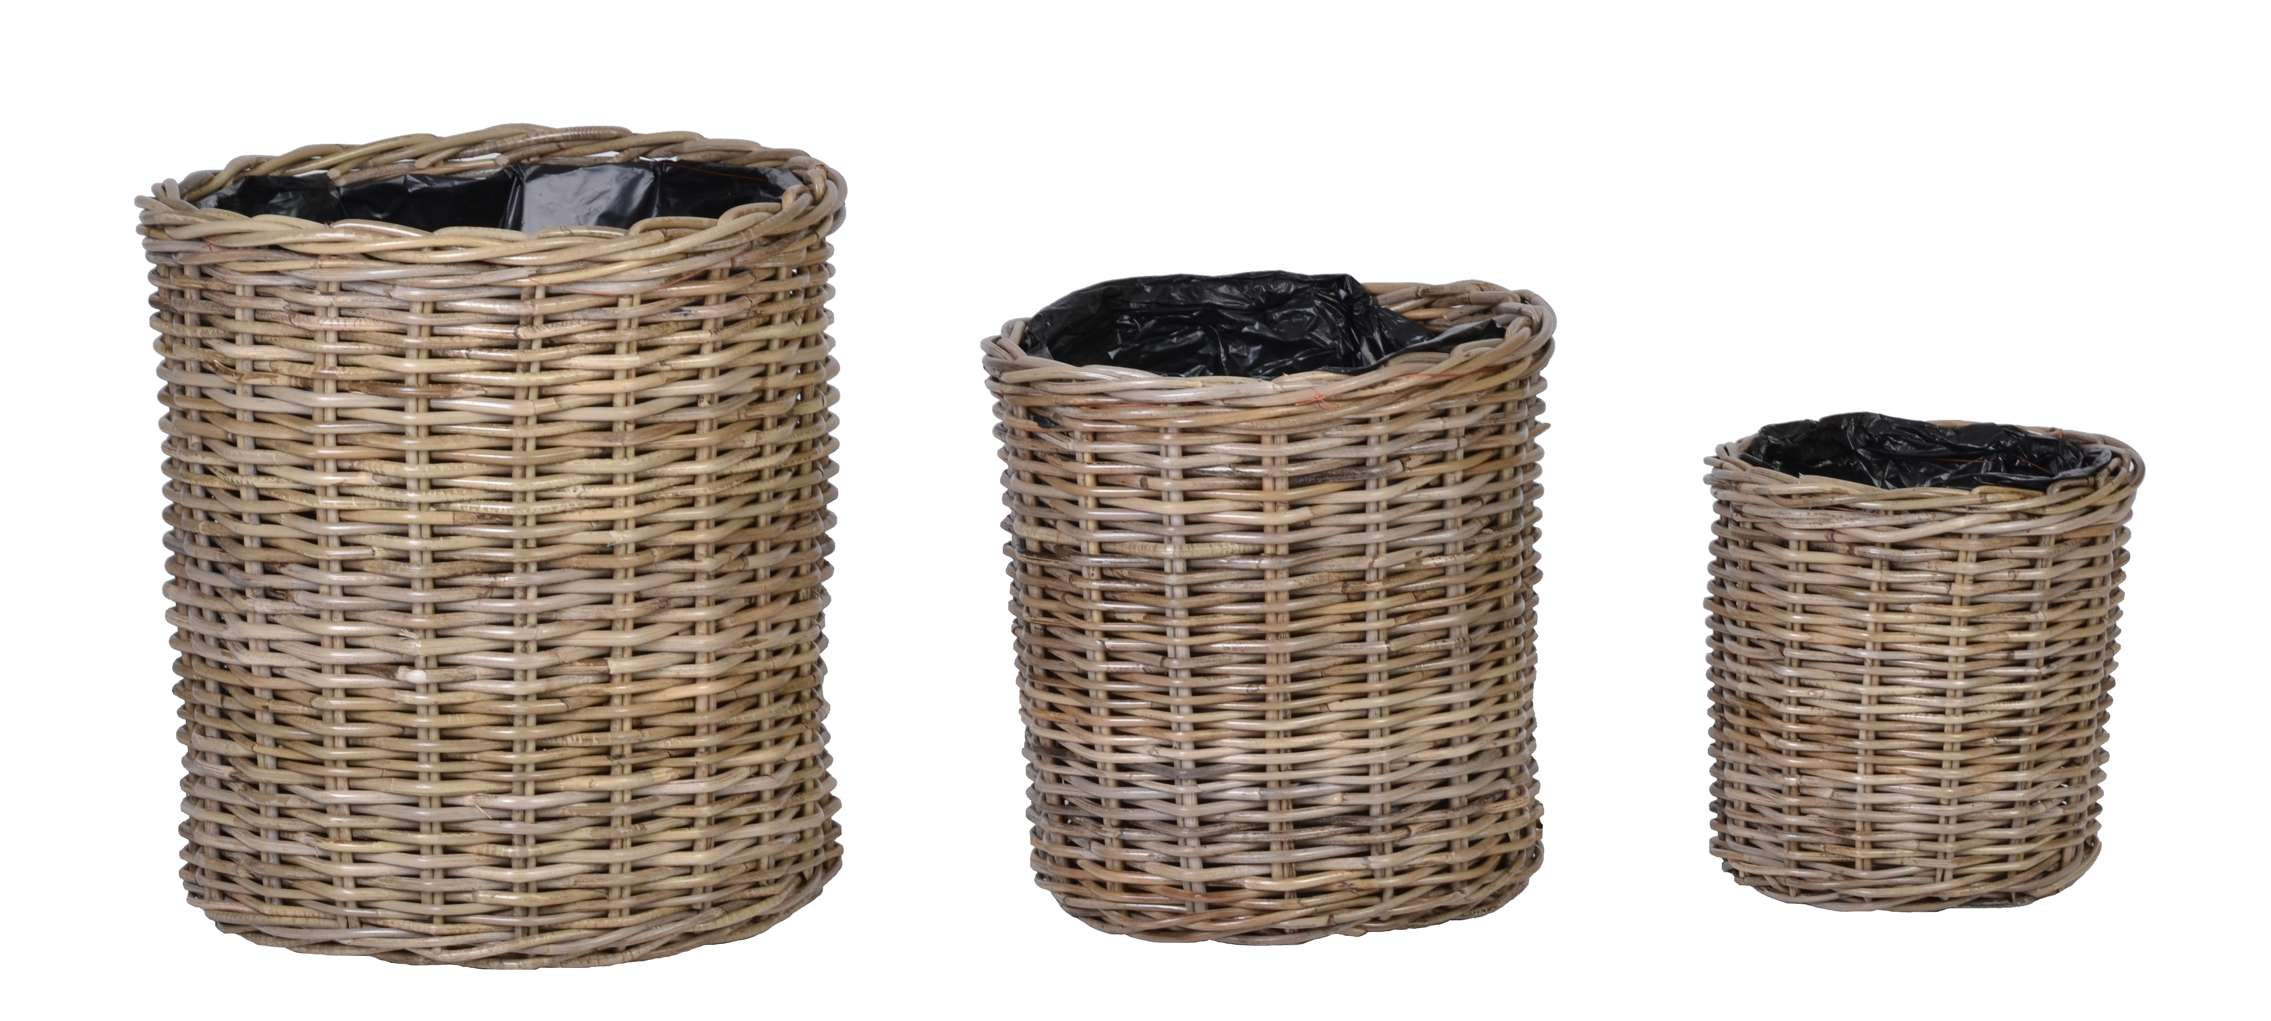 rattan korb blumentopf rattan m bel grau 50228 ebay. Black Bedroom Furniture Sets. Home Design Ideas